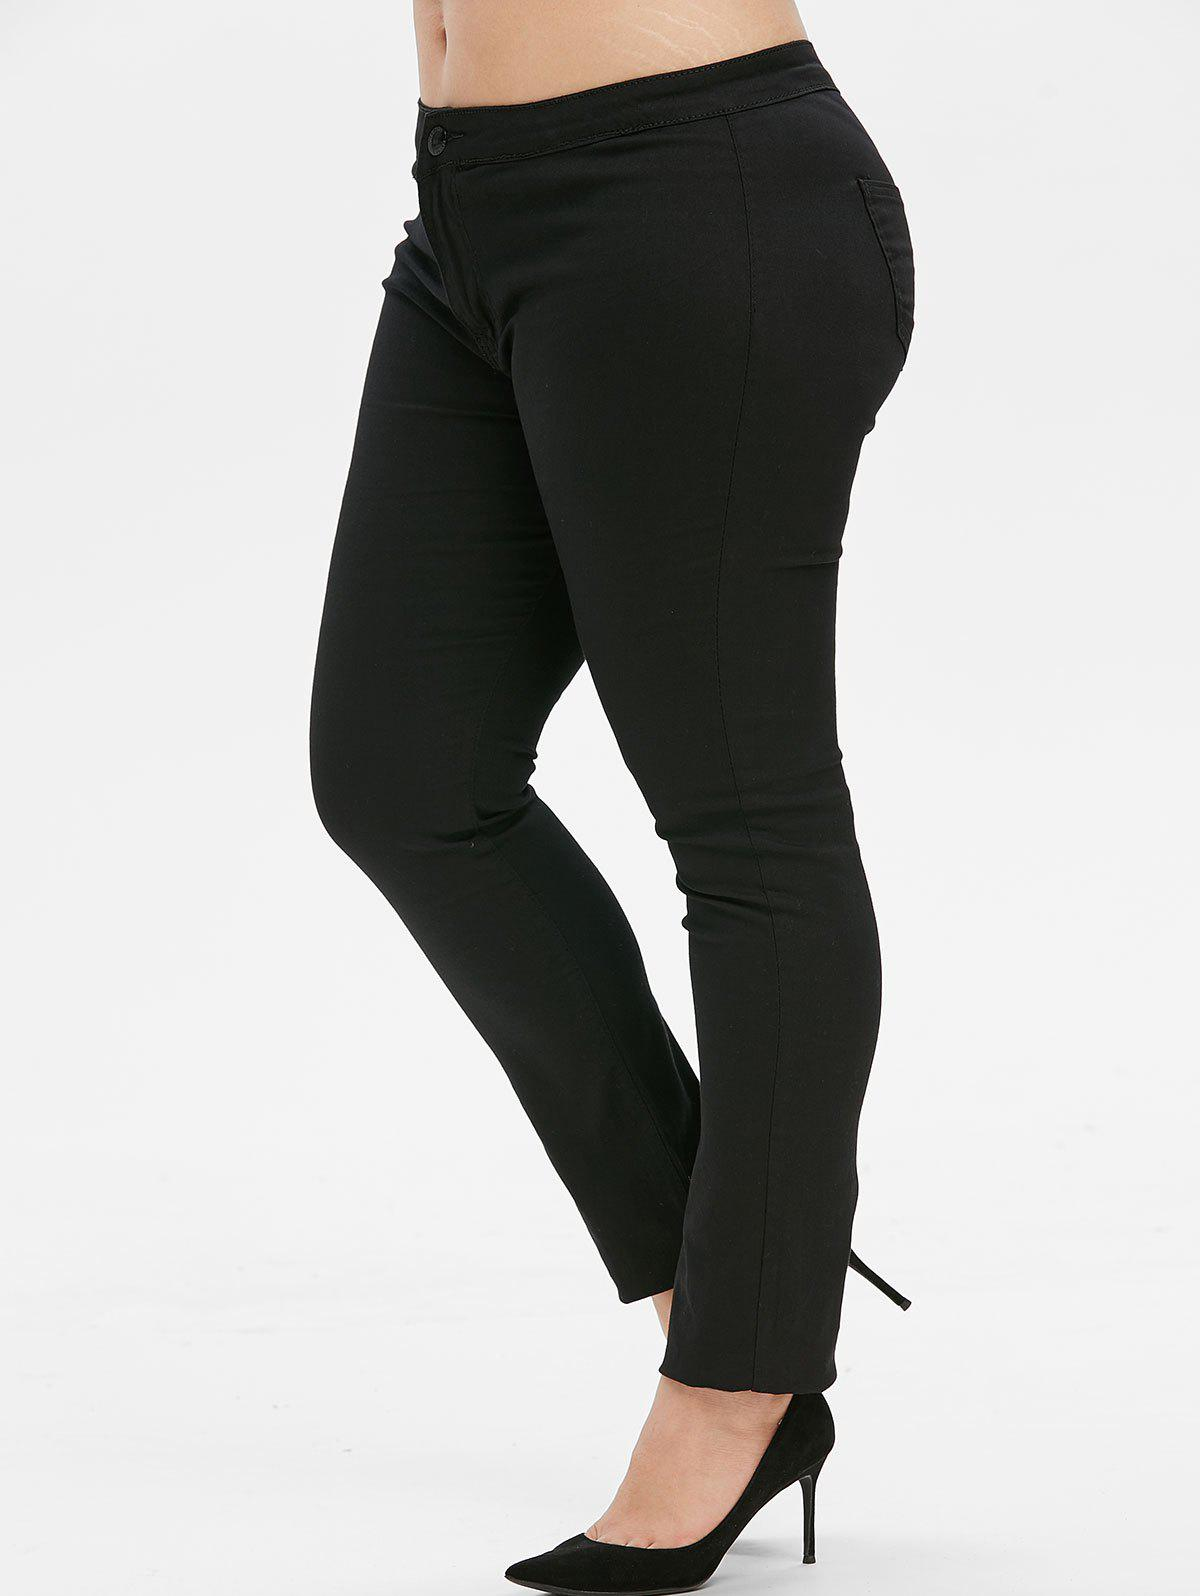 Mid Rise Solid Plus Size Skinny Pants - BLACK 4X